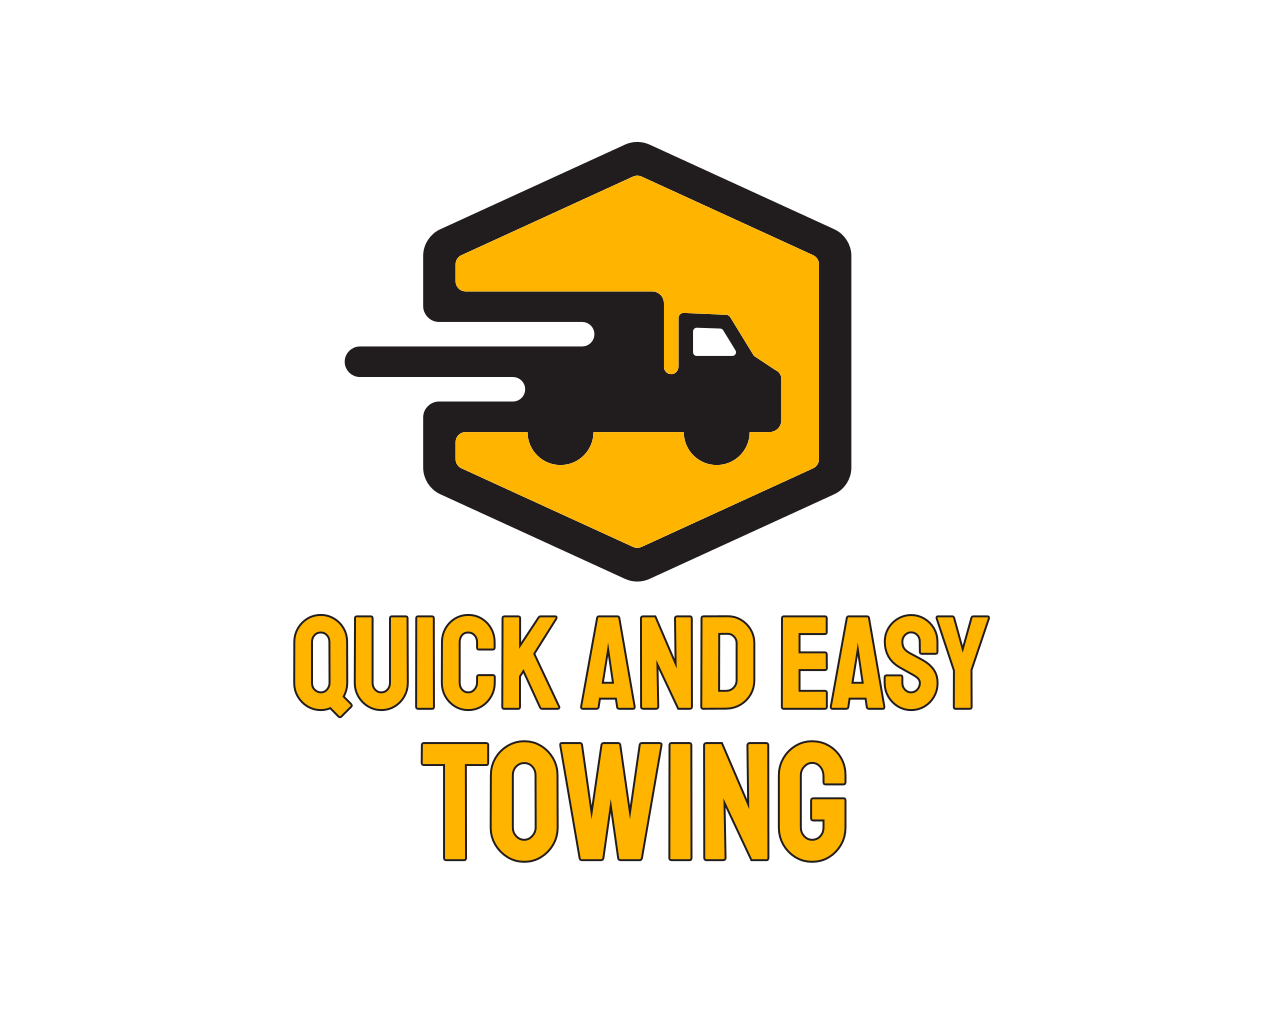 Quick and Easy Towing